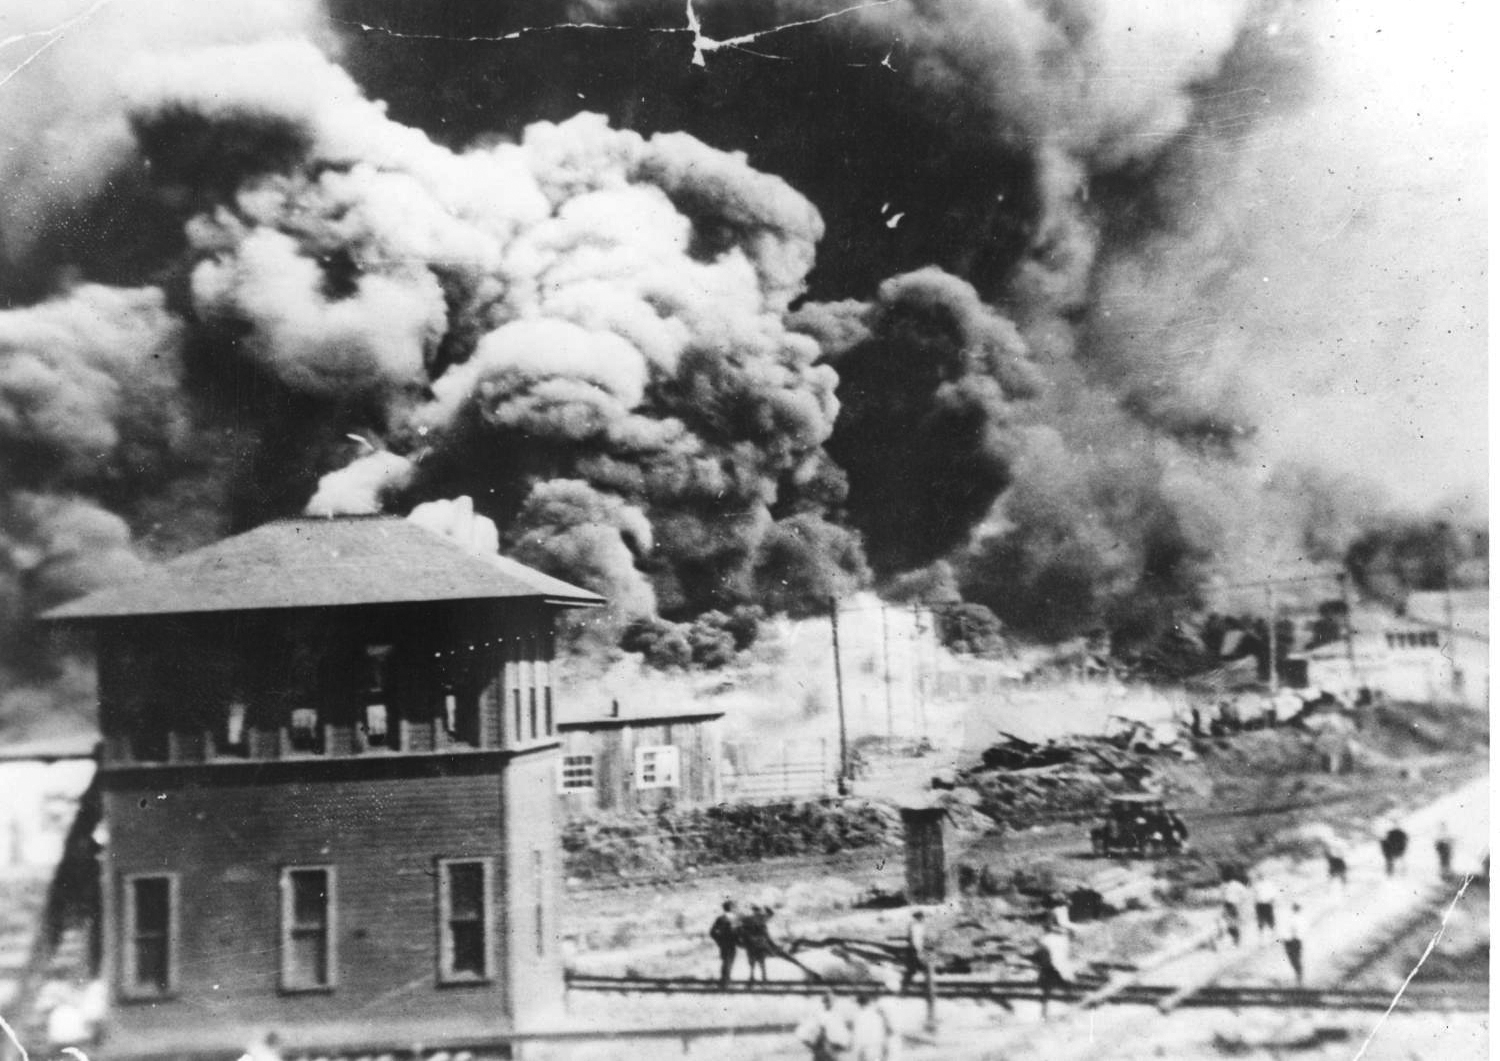 City of Tulsa: Archaeologists to assist with the 1921 Tulsa Race Massacre Investigation